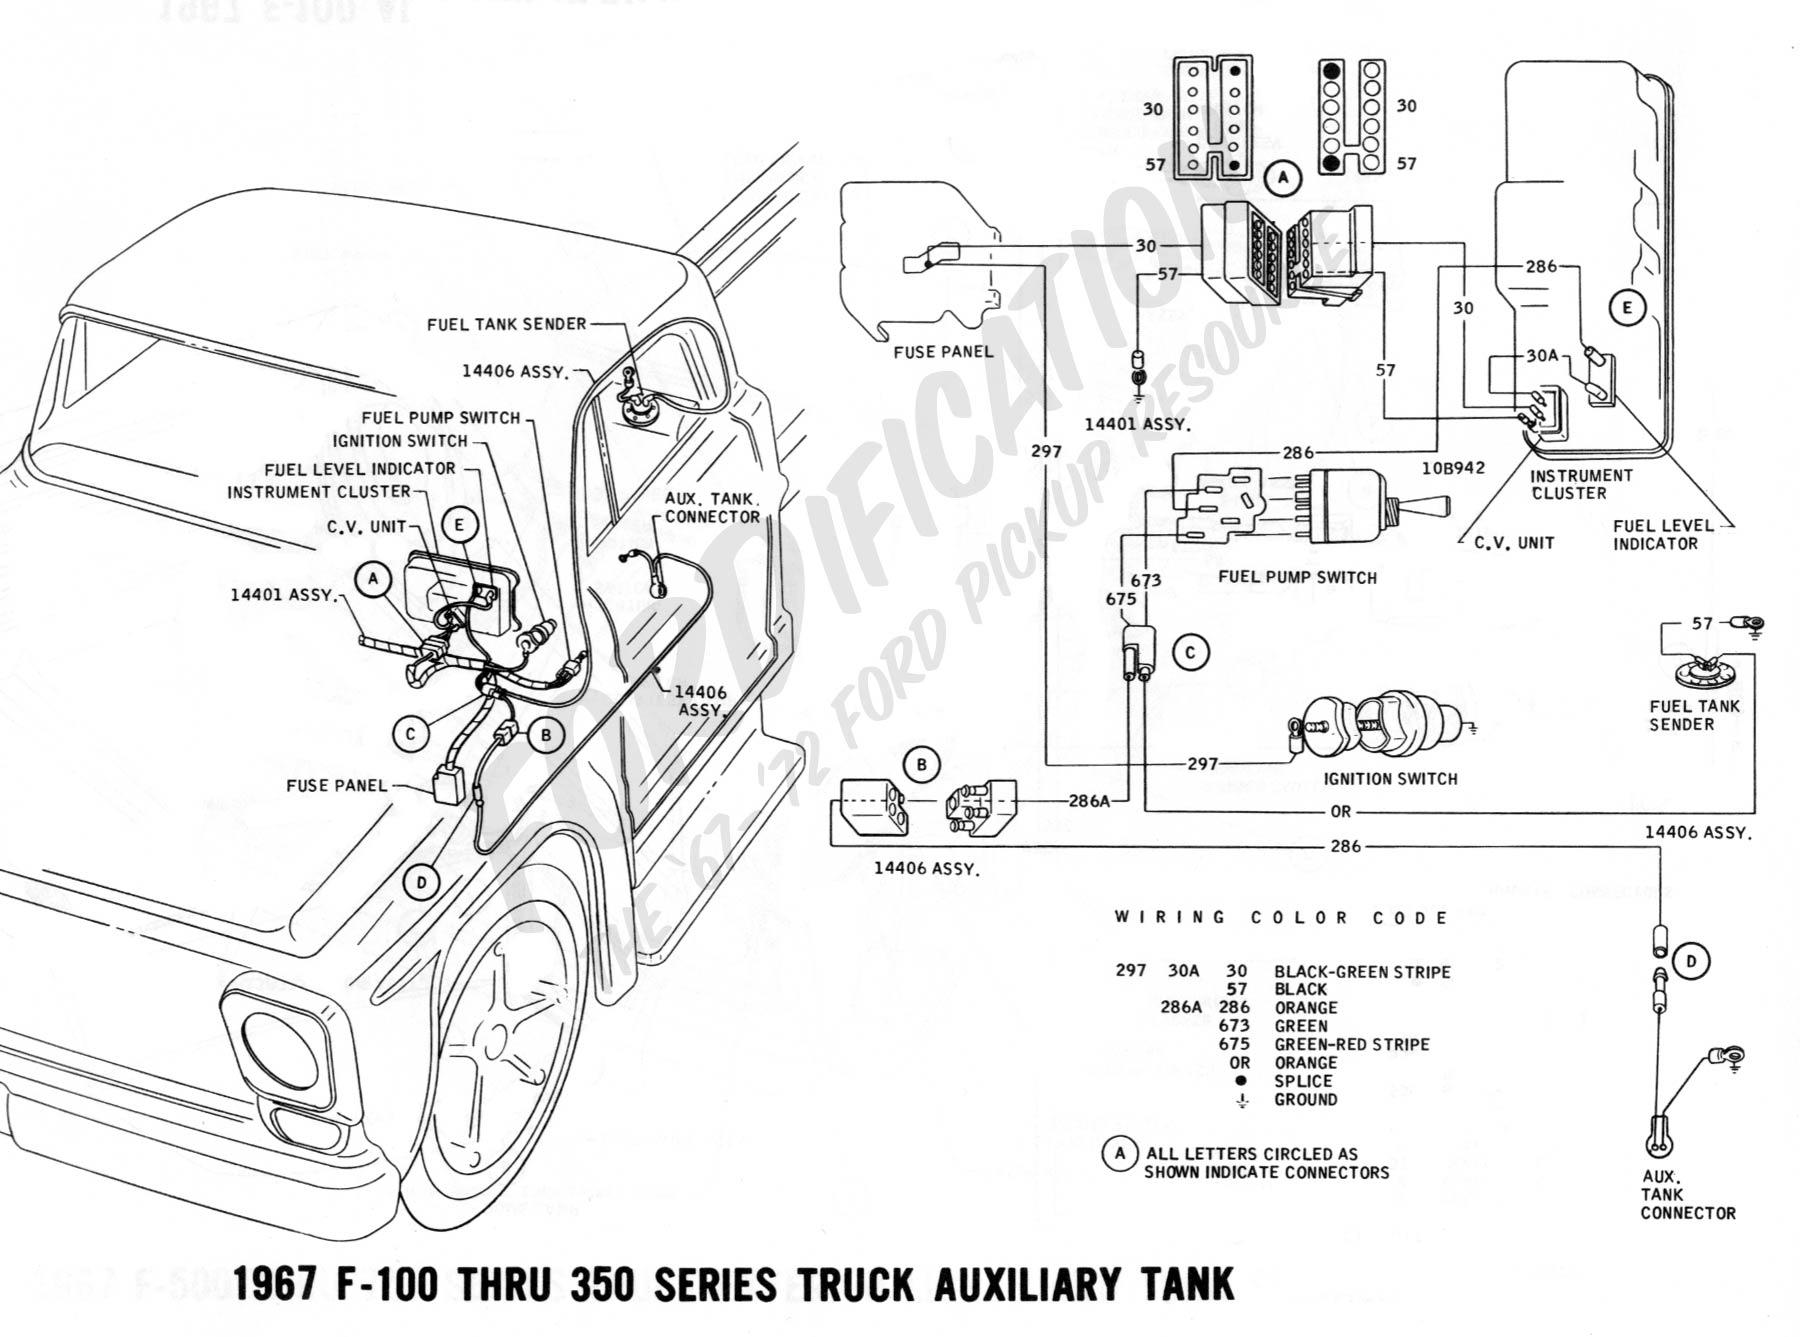 wiring 1967auxtank ford truck technical drawings and schematics section h wiring 2002 F250 Wiring Diagram at reclaimingppi.co